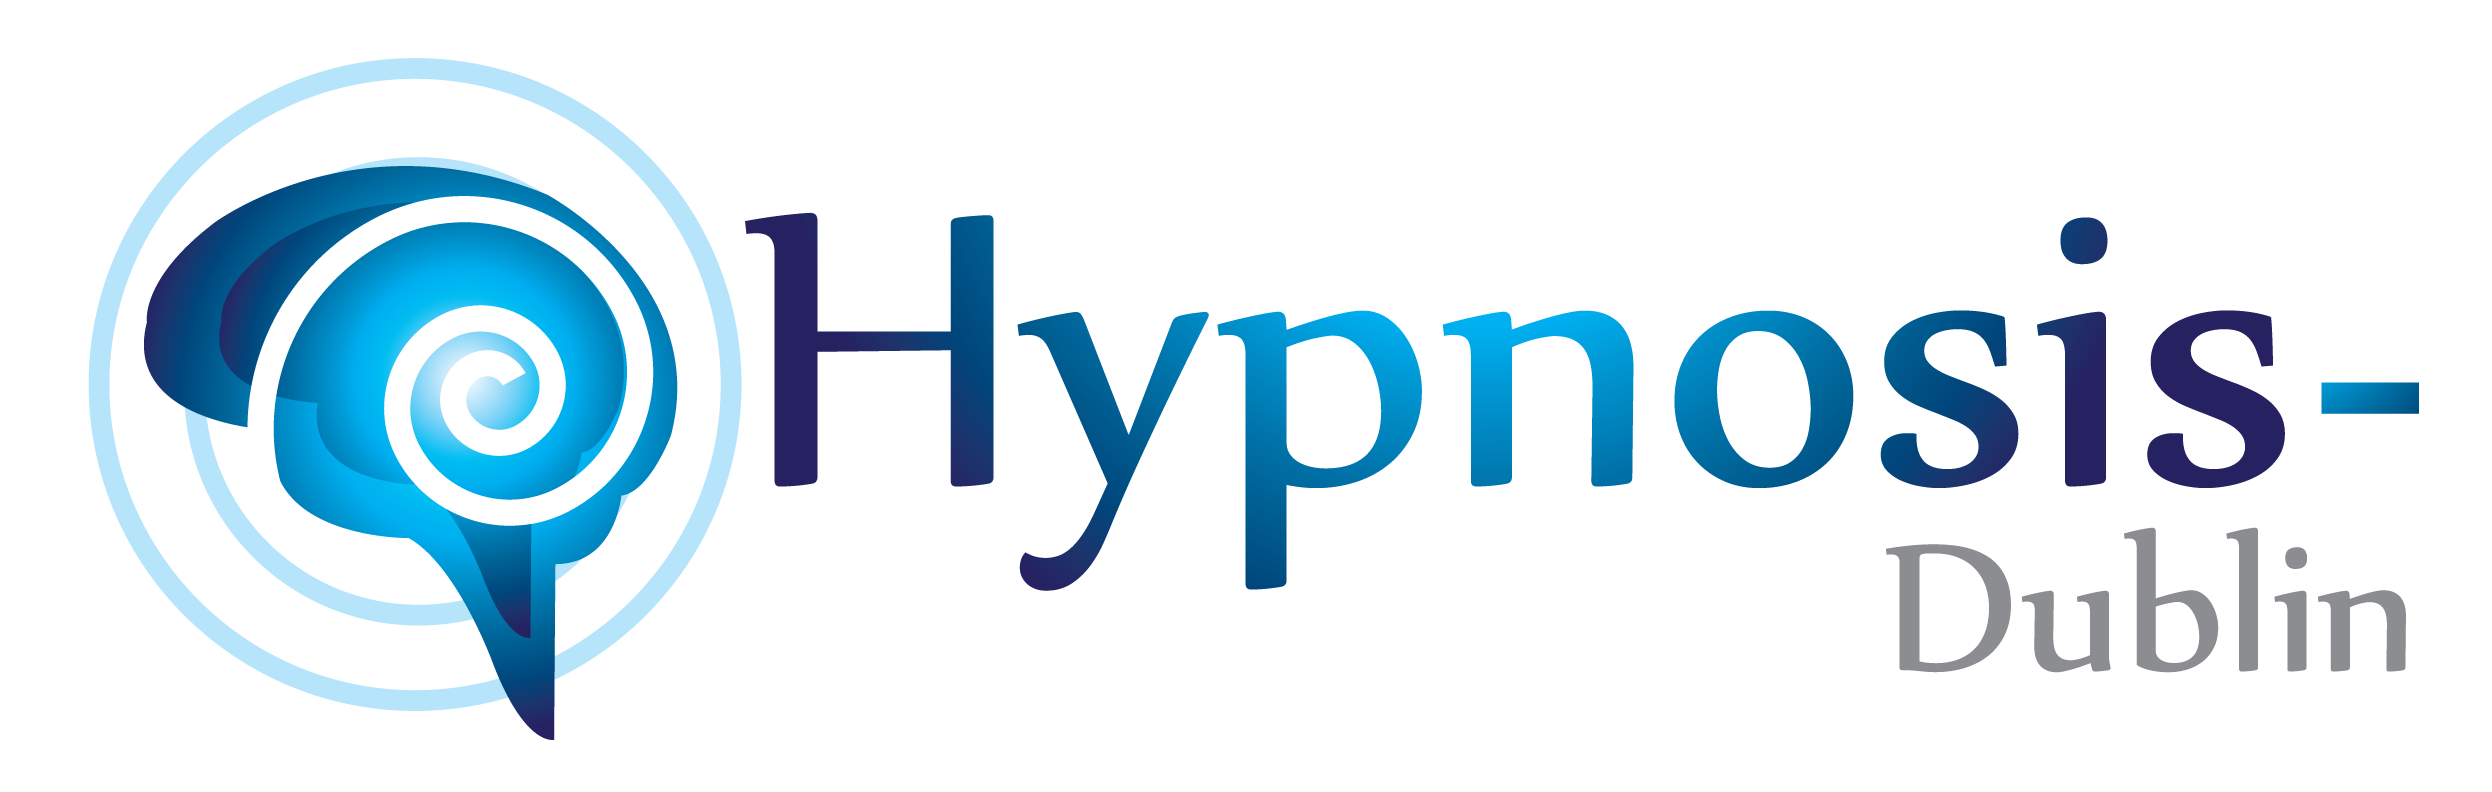 Hypnotherapy Cost Per Session - Hypnotherapy to Lose Weight